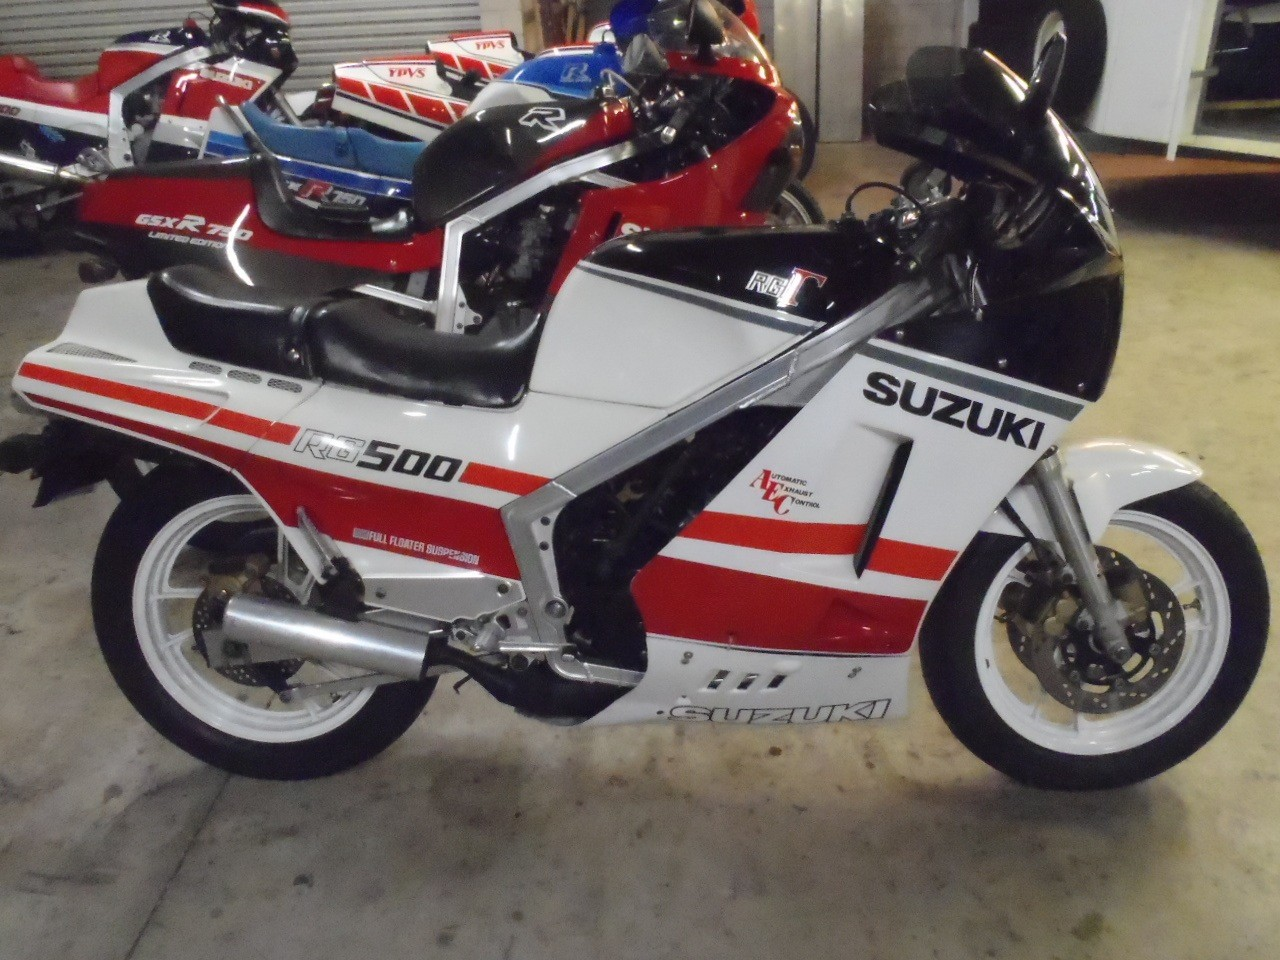 1985 suzuki rg 500 pics specs and information. Black Bedroom Furniture Sets. Home Design Ideas